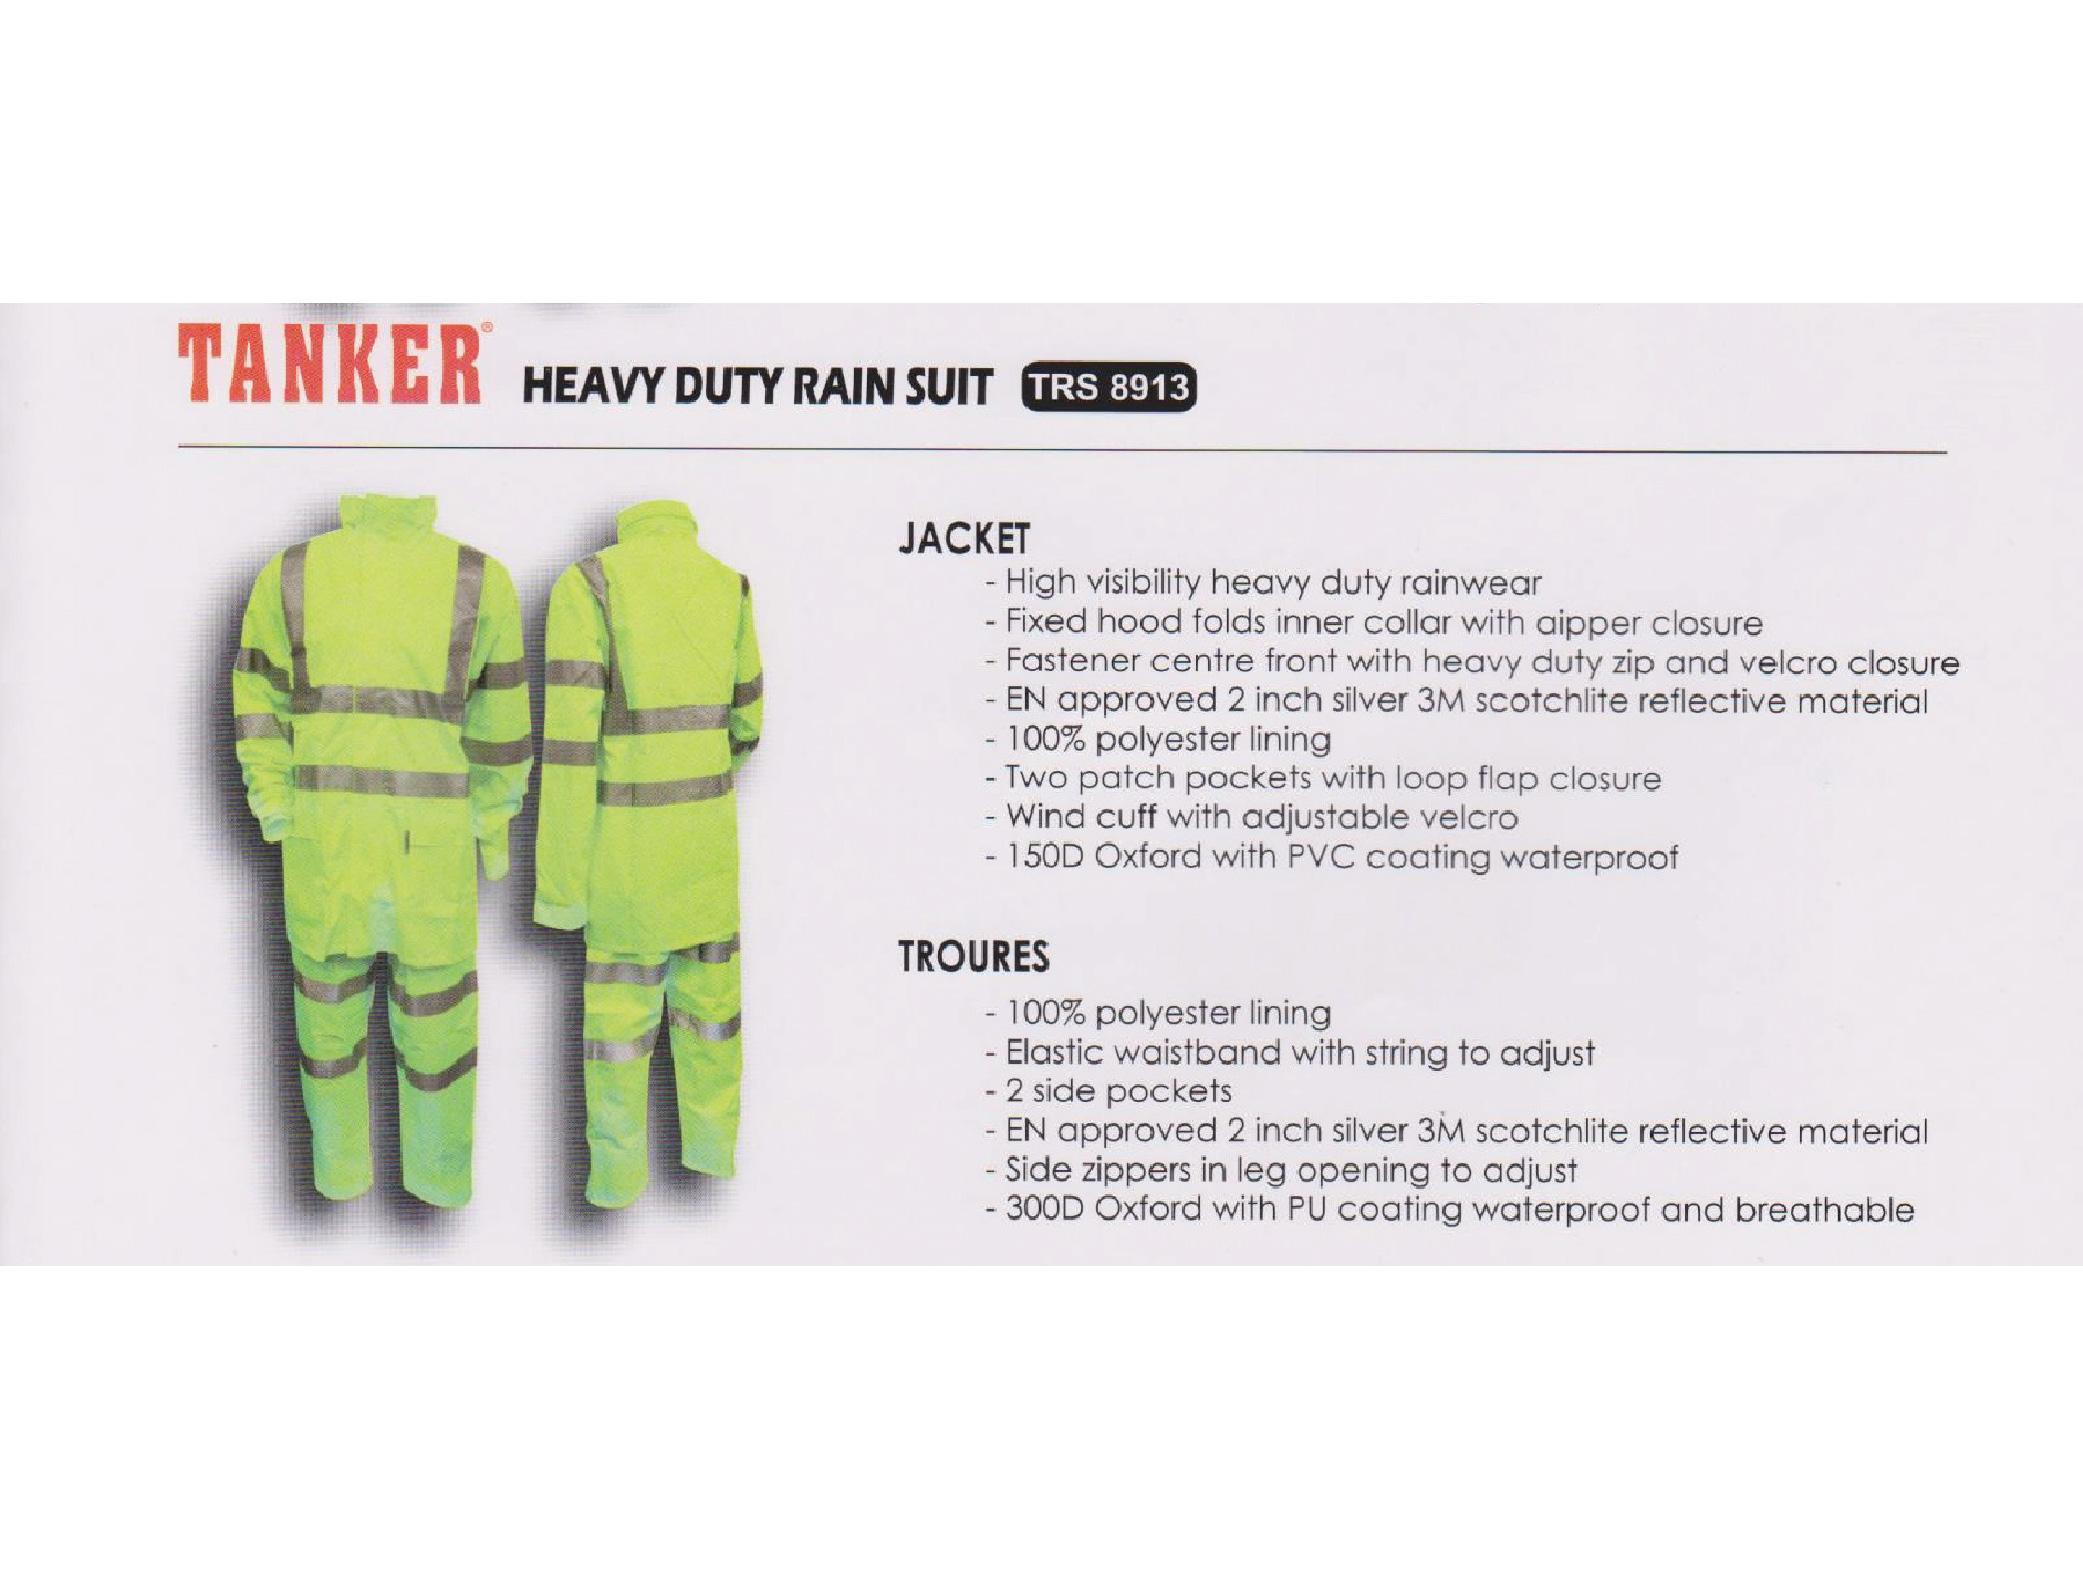 Tanker Heavy Duty Rain Suit - TRS 8913